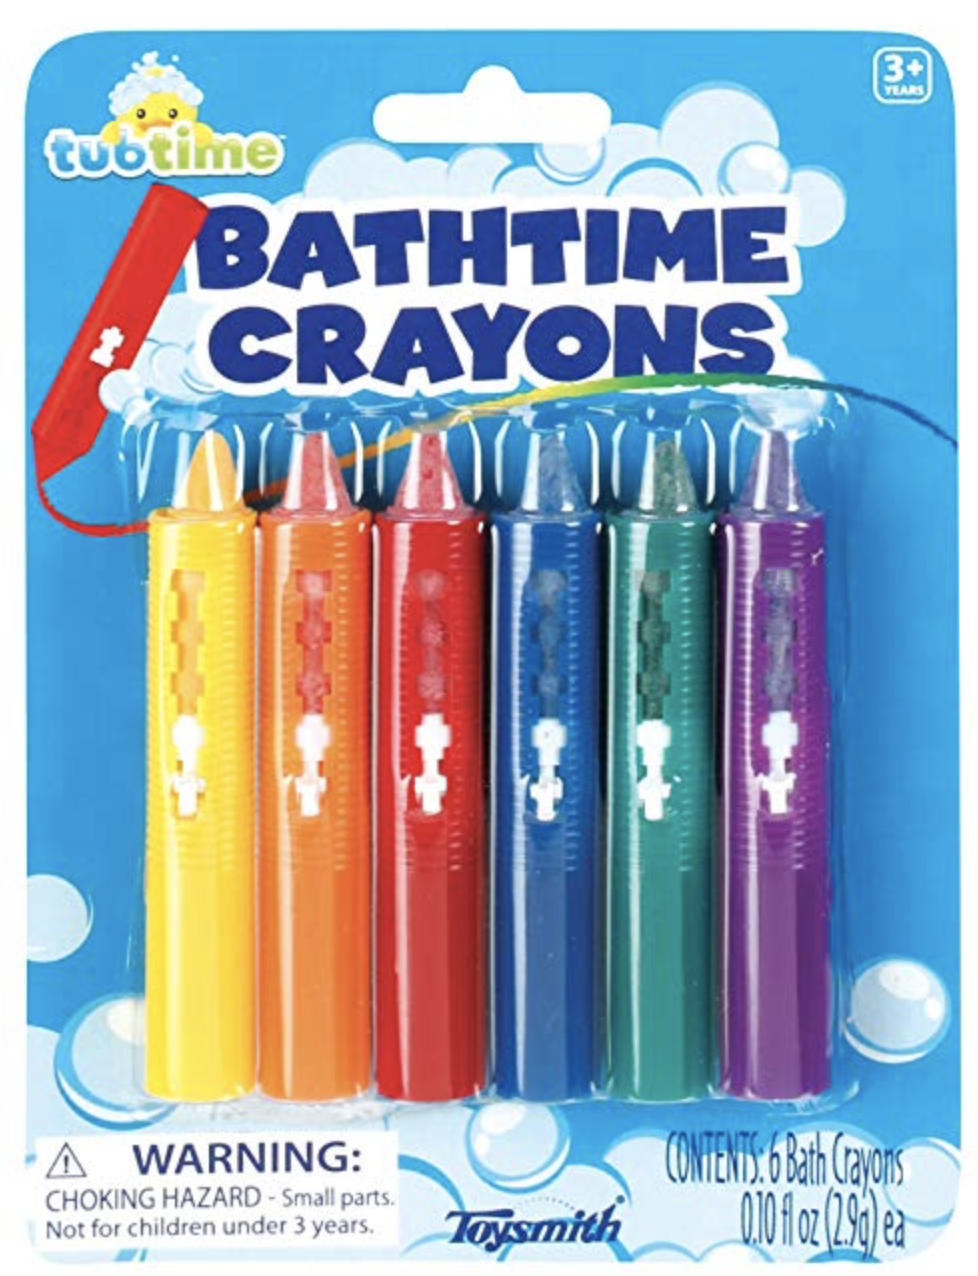 Stocking Stuffers For Toddlers - Bath Crayons